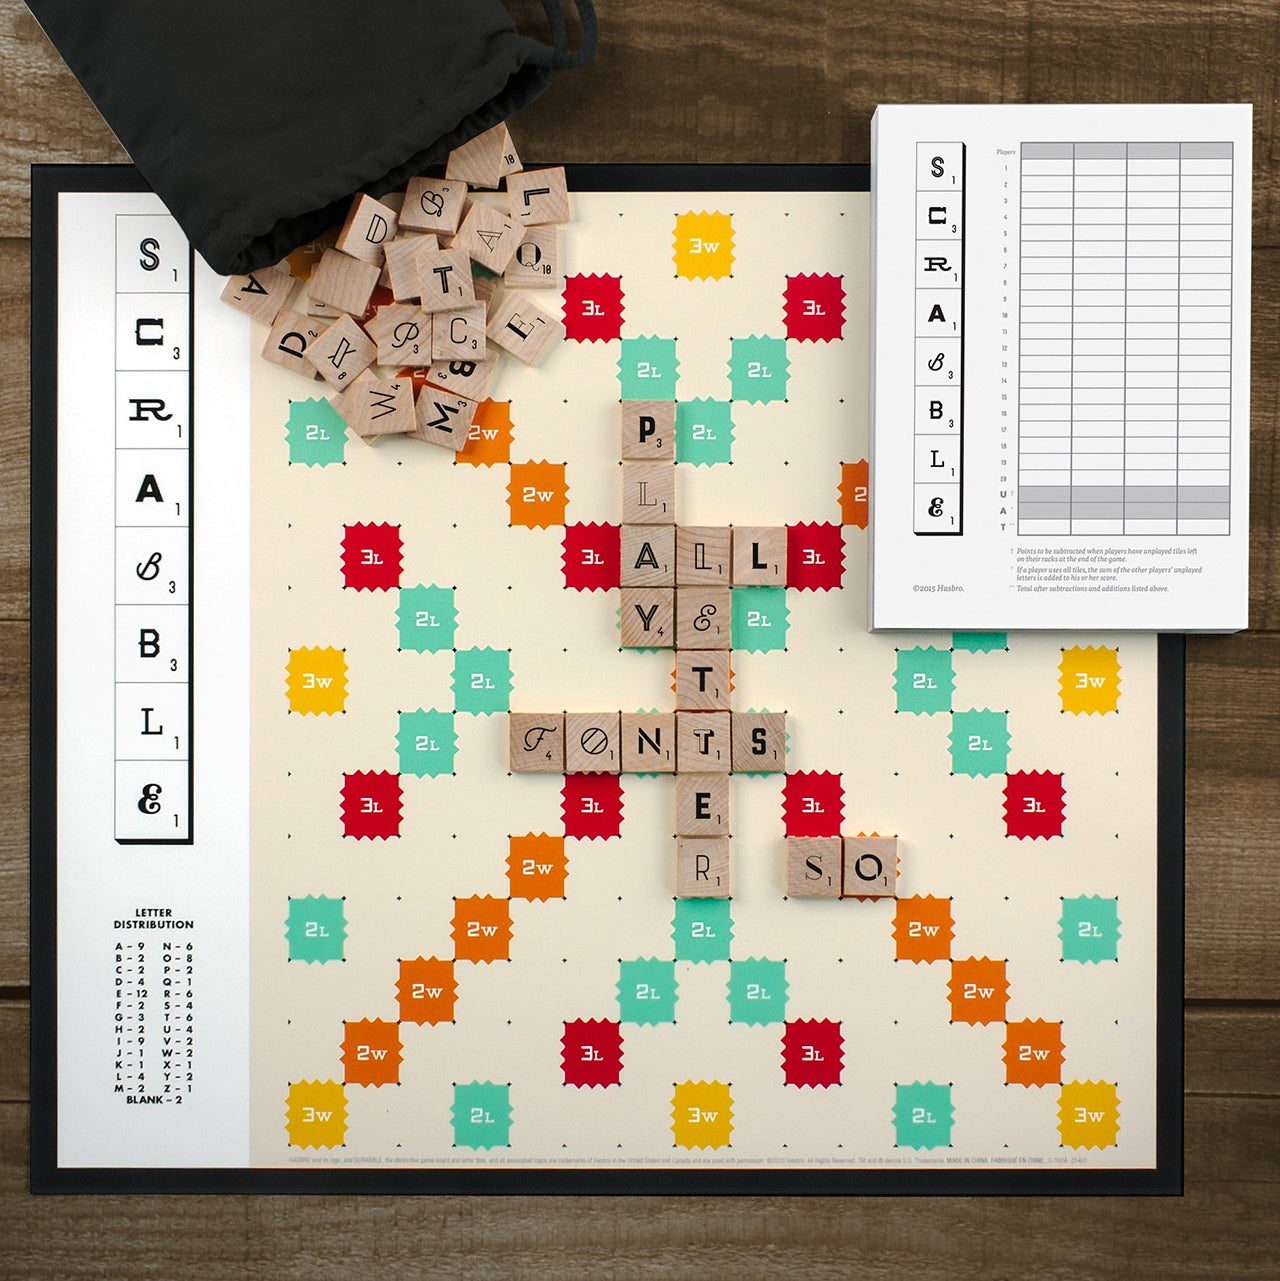 The Third Edition of the World's Most Beautiful Scrabble Game Introduces new Fonts